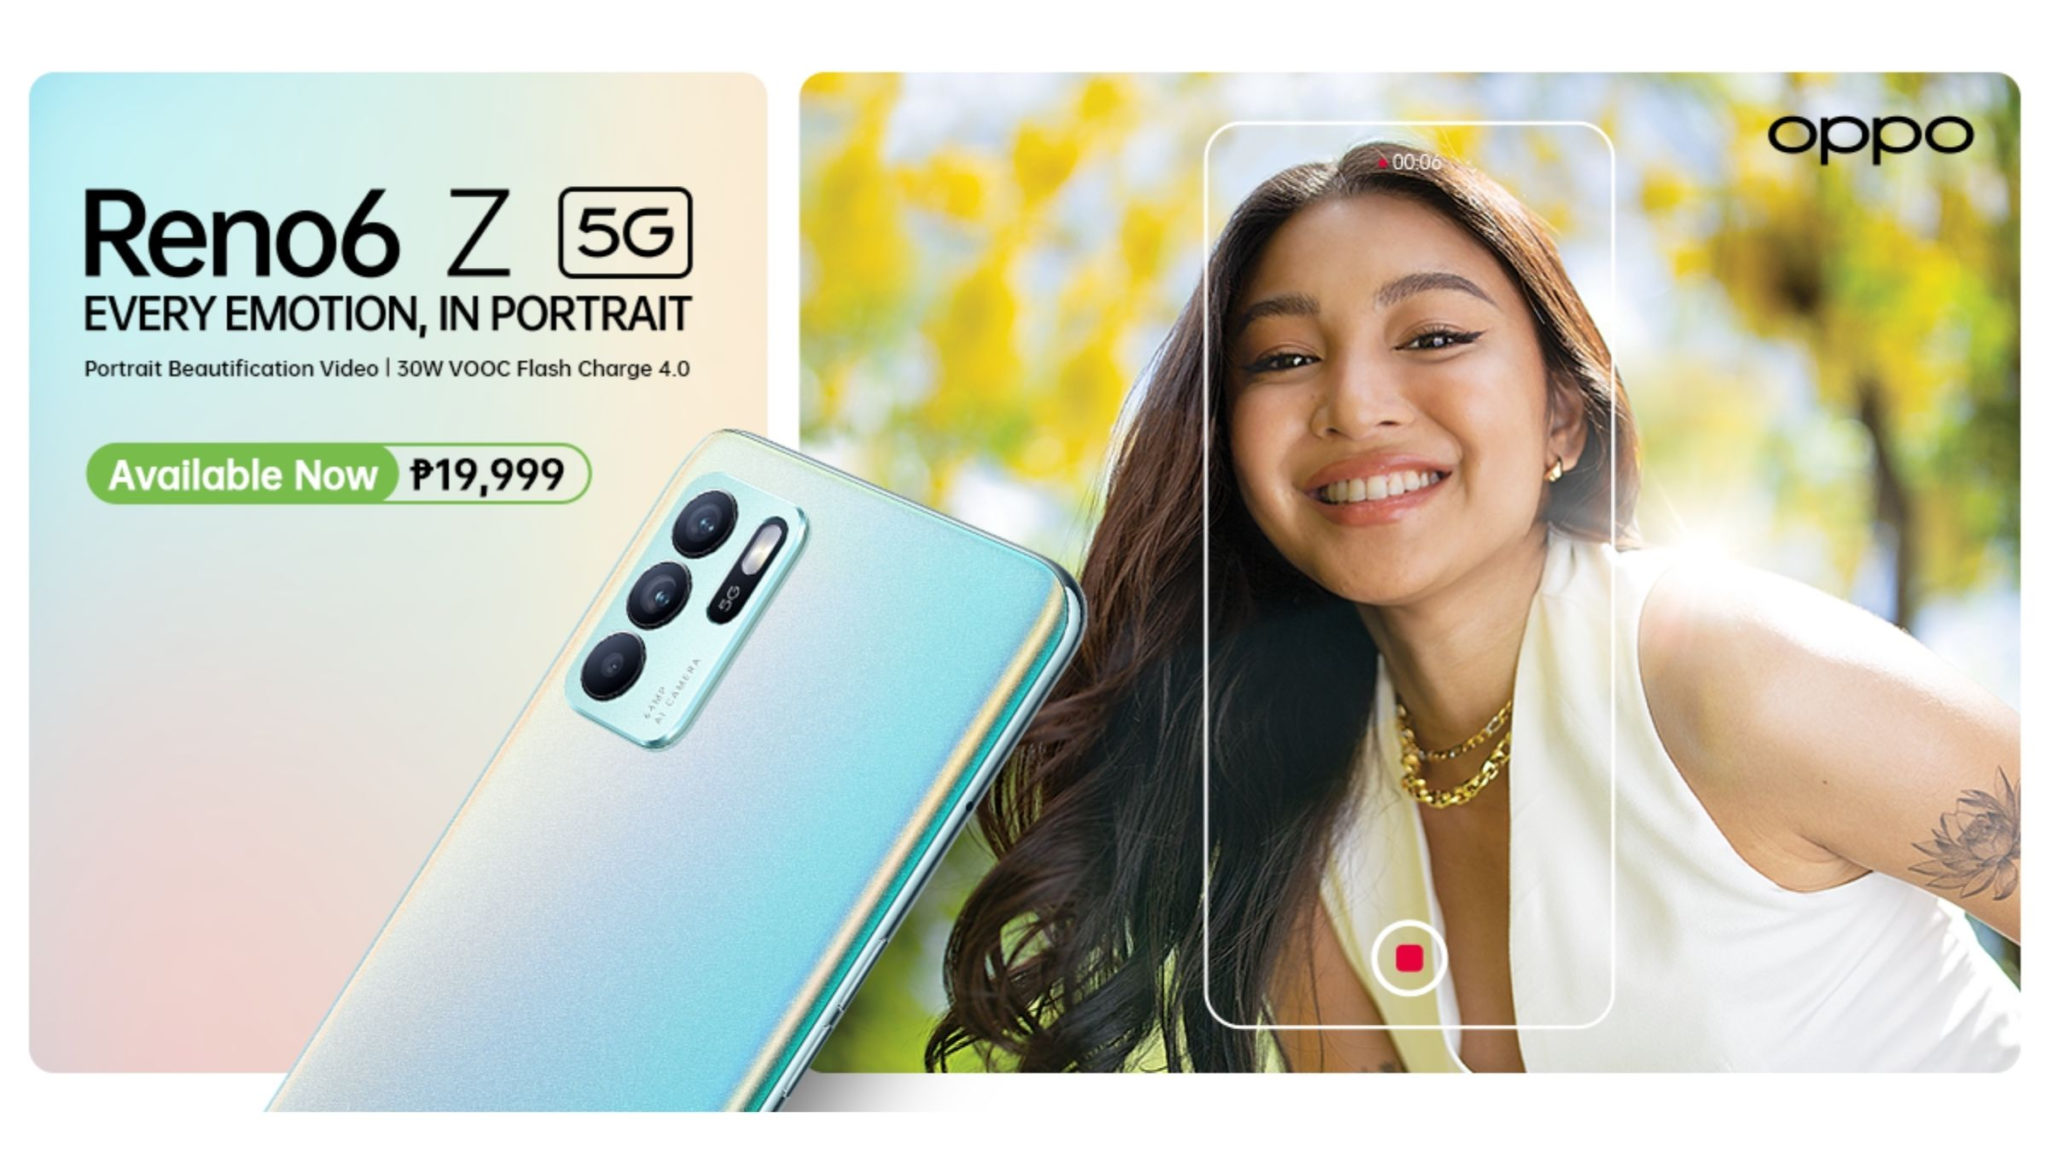 OPPO Reno6 Z 5G Now Available Header